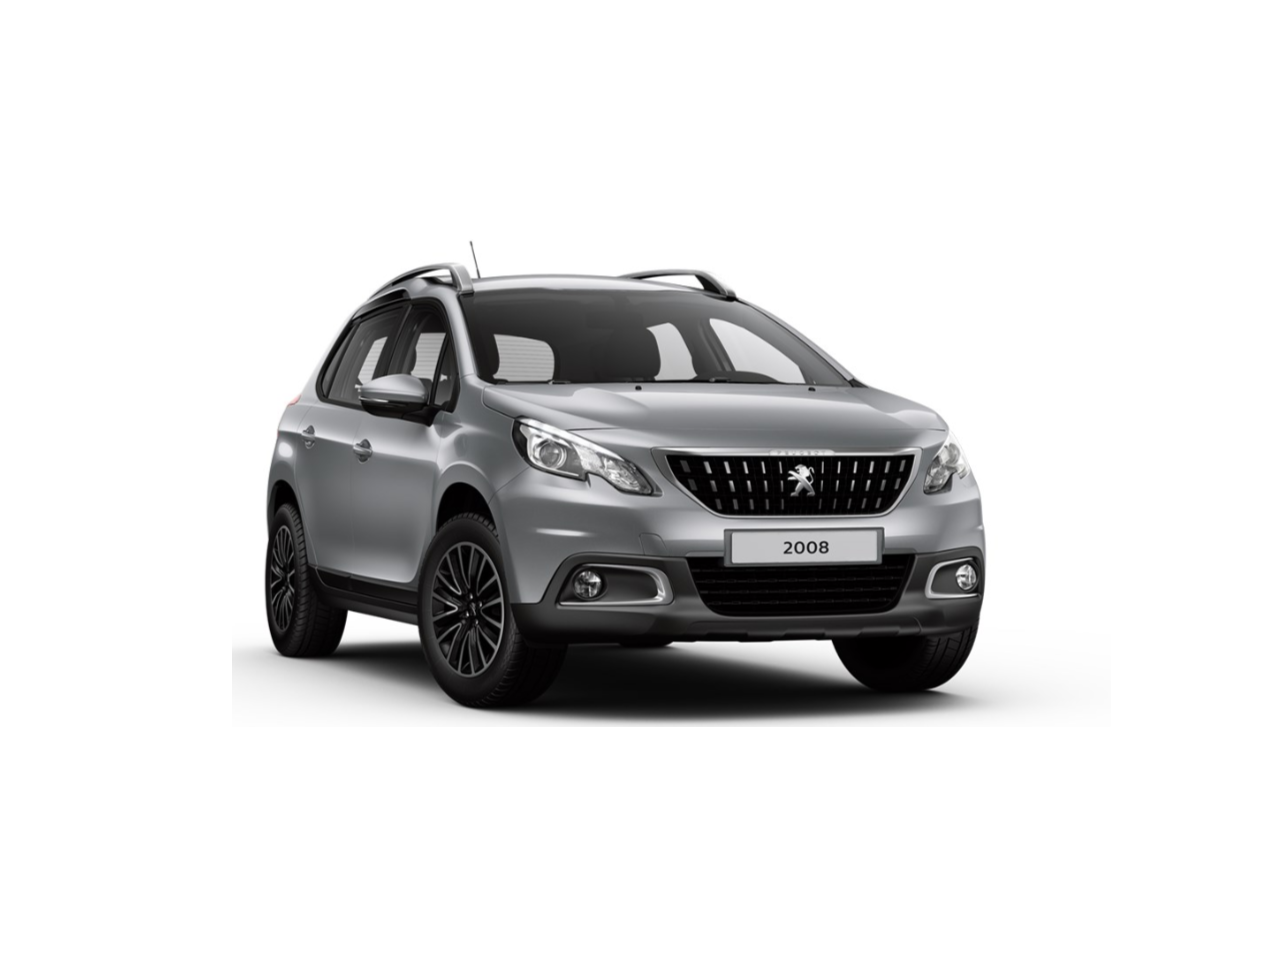 Peugeot 2008 private lease 1.2 Benzine